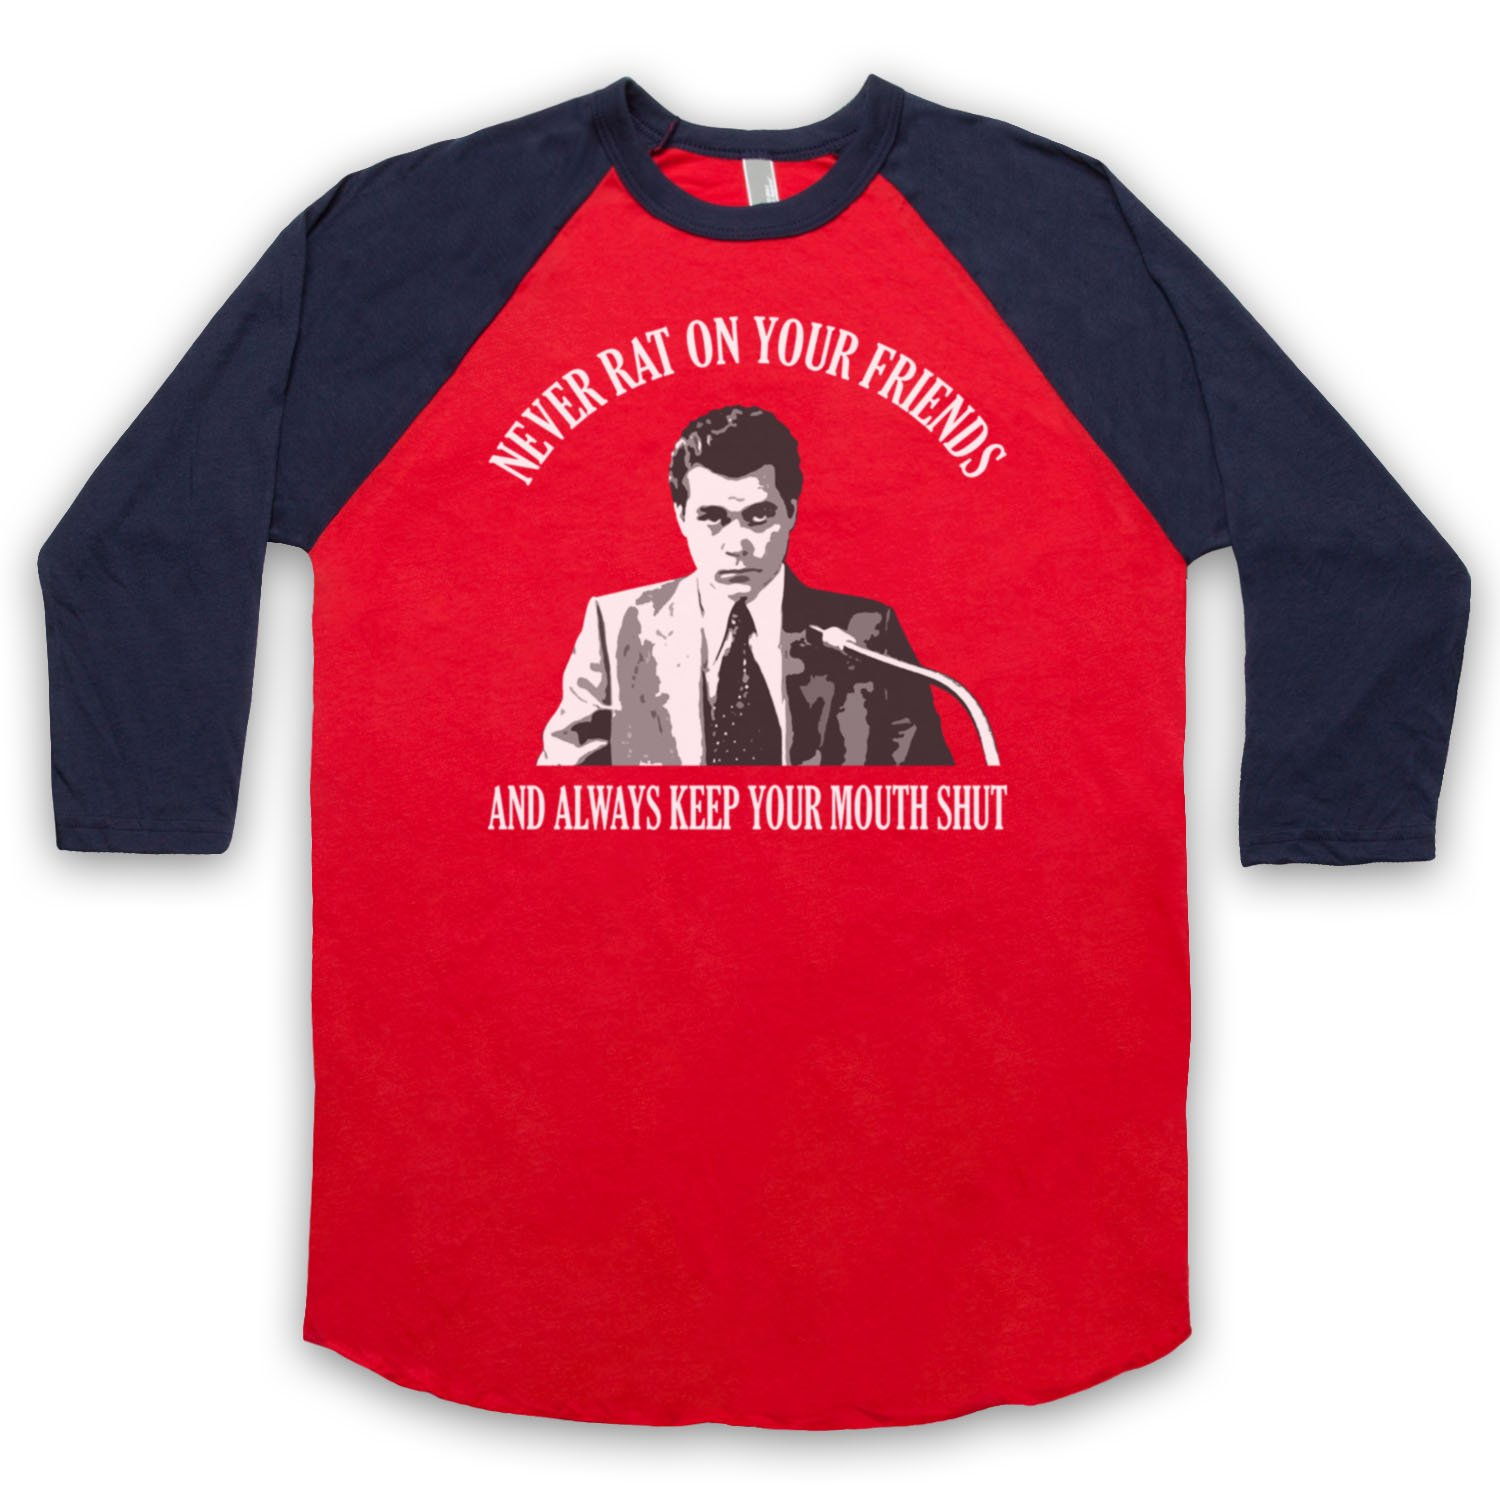 Inspired by Goodfellas Never Rat On Your Friends Unofficial 3/4 Sleeve Retro Baseball Tee